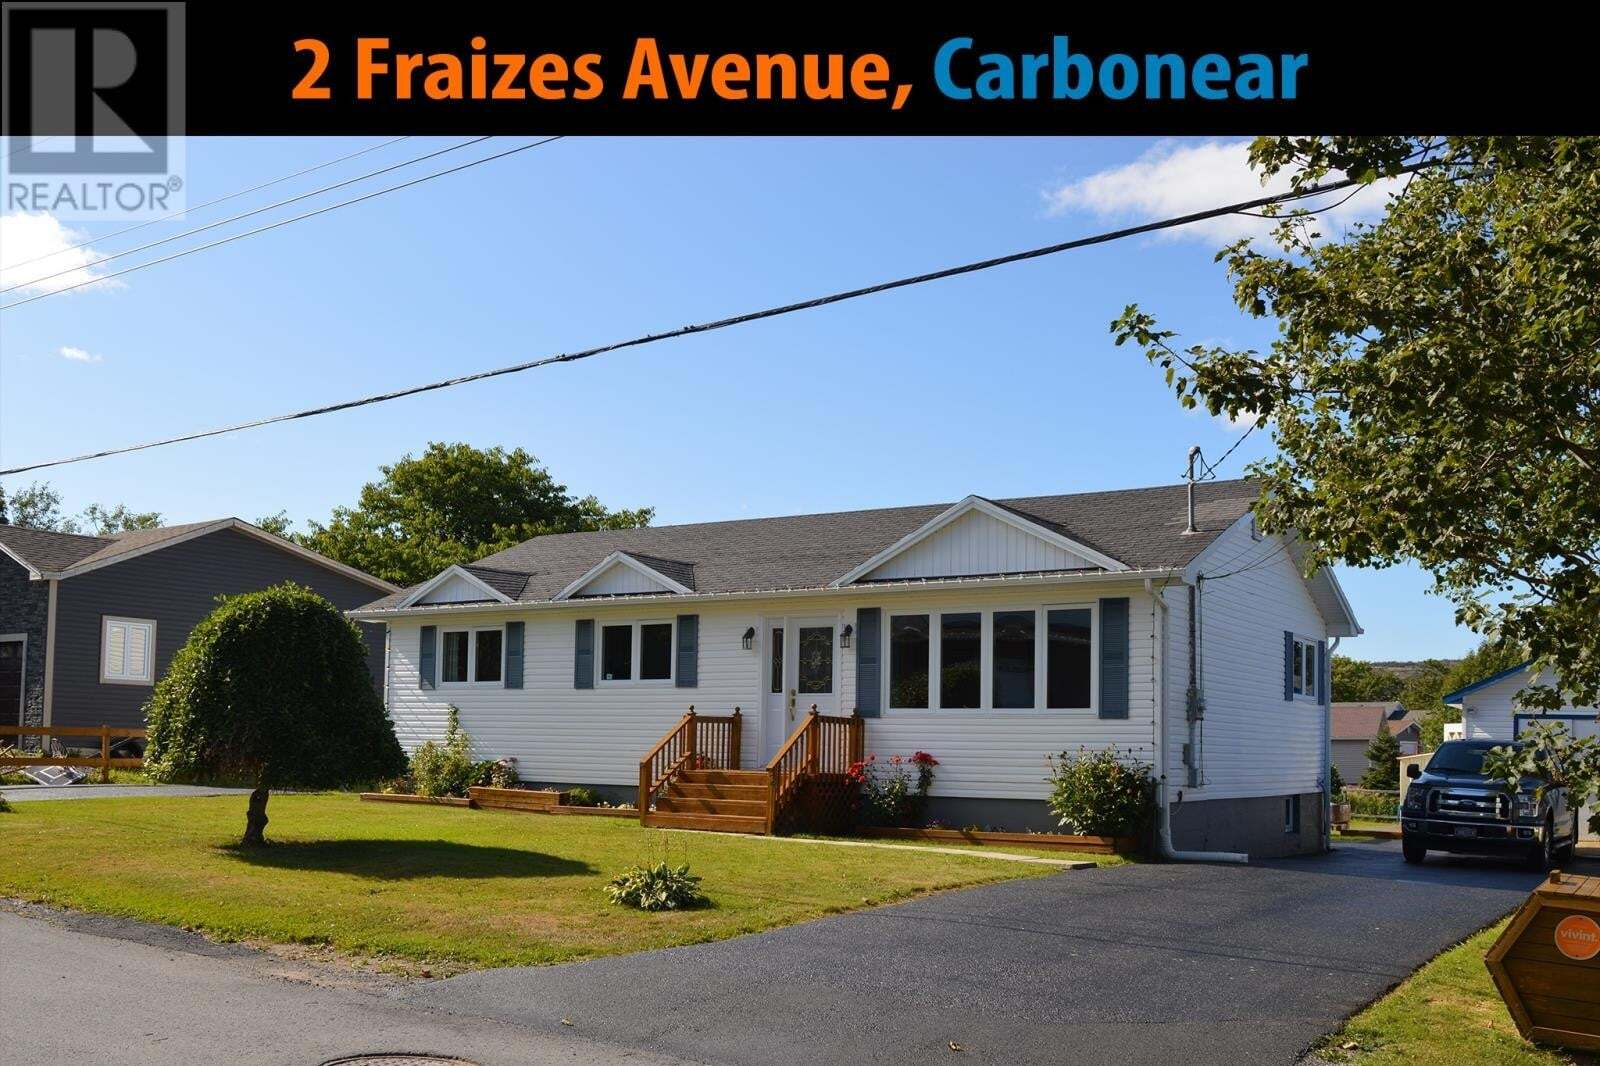 House for sale at 2 Fraizes Ave Carbonear Newfoundland - MLS: 1212233